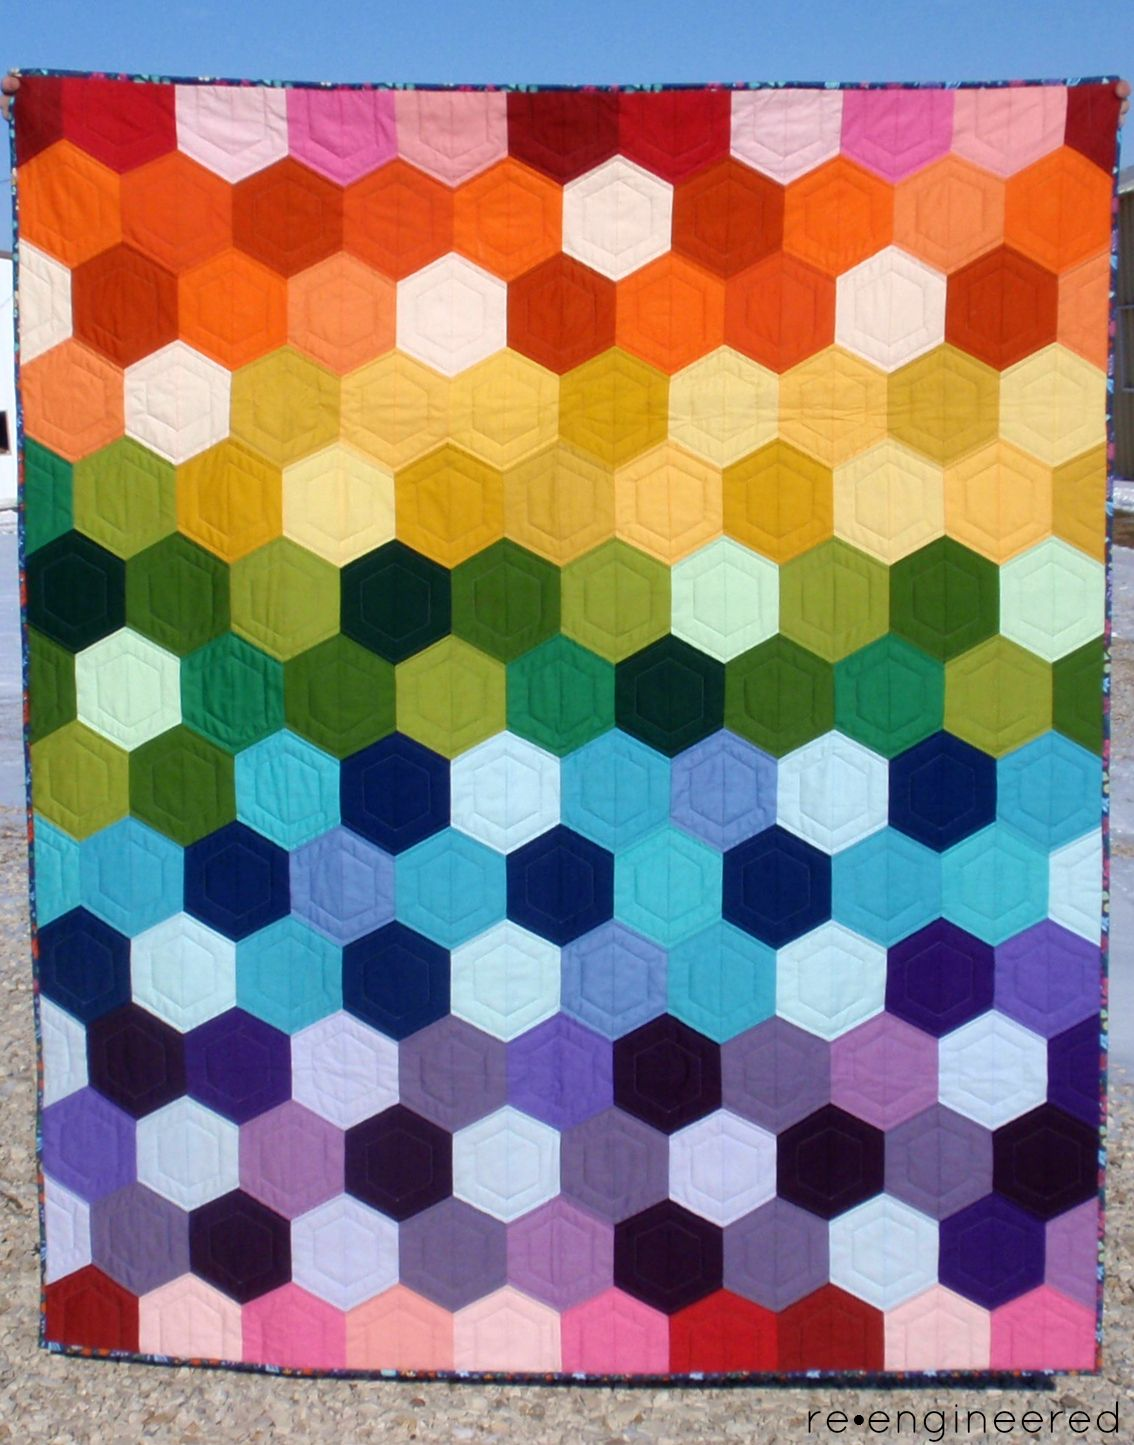 re•engineered: rainbow hexagon quilt : finished | Quilting ... : finishing a hexagon quilt - Adamdwight.com